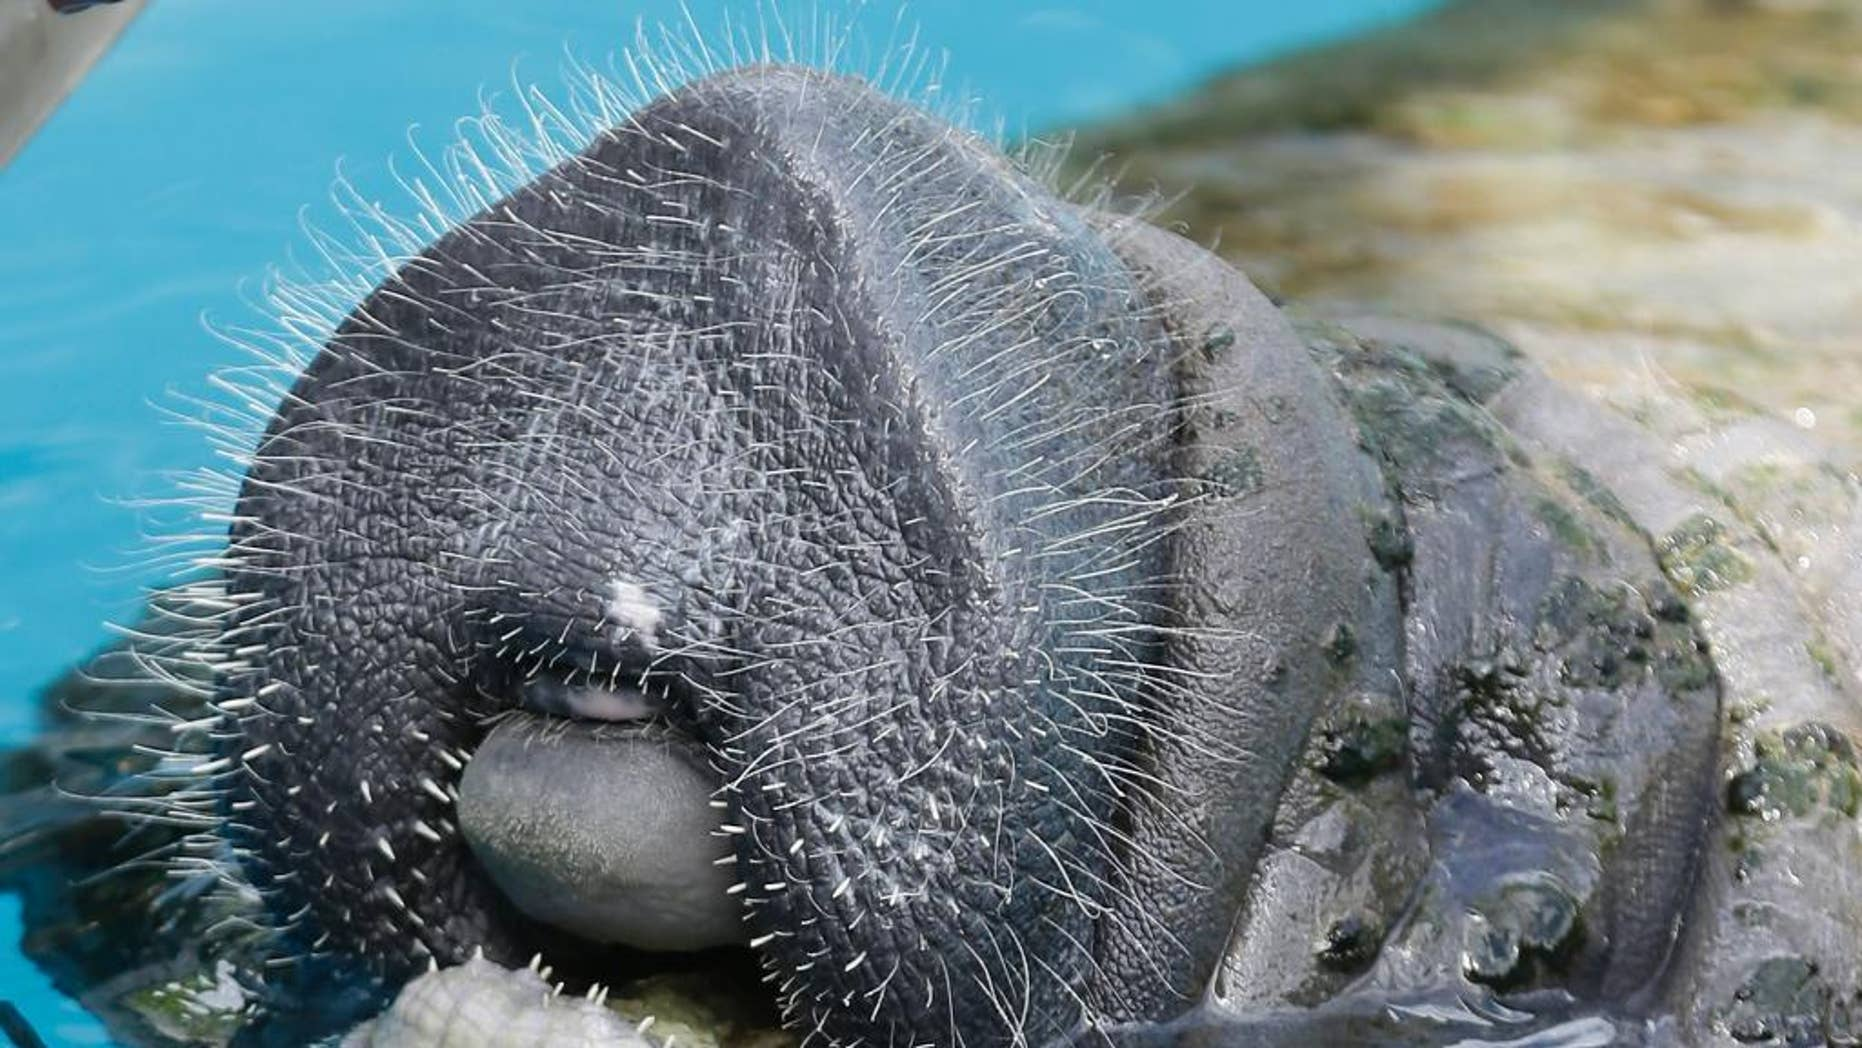 "In this May 15, 2014 photo. a manatee sticks its head out of the water at Miami Seaquarium in Miami.  As manatees recover in Florida, their U.S. home base, more and more seem to be showing up farther west along the Gulf of Mexico. A total of seven stranded manatees had been reported along the Alabama coast before 2007, when a network to report strandings and sightings was created. Since then, ""we've responded to dozens"" of strandings, said Ruth Carmichael, head of the Dauphin Island Sea Lab's Manatee Sighting Network for Alabama and Mississippi. (AP Photo/Wilfredo Lee)"